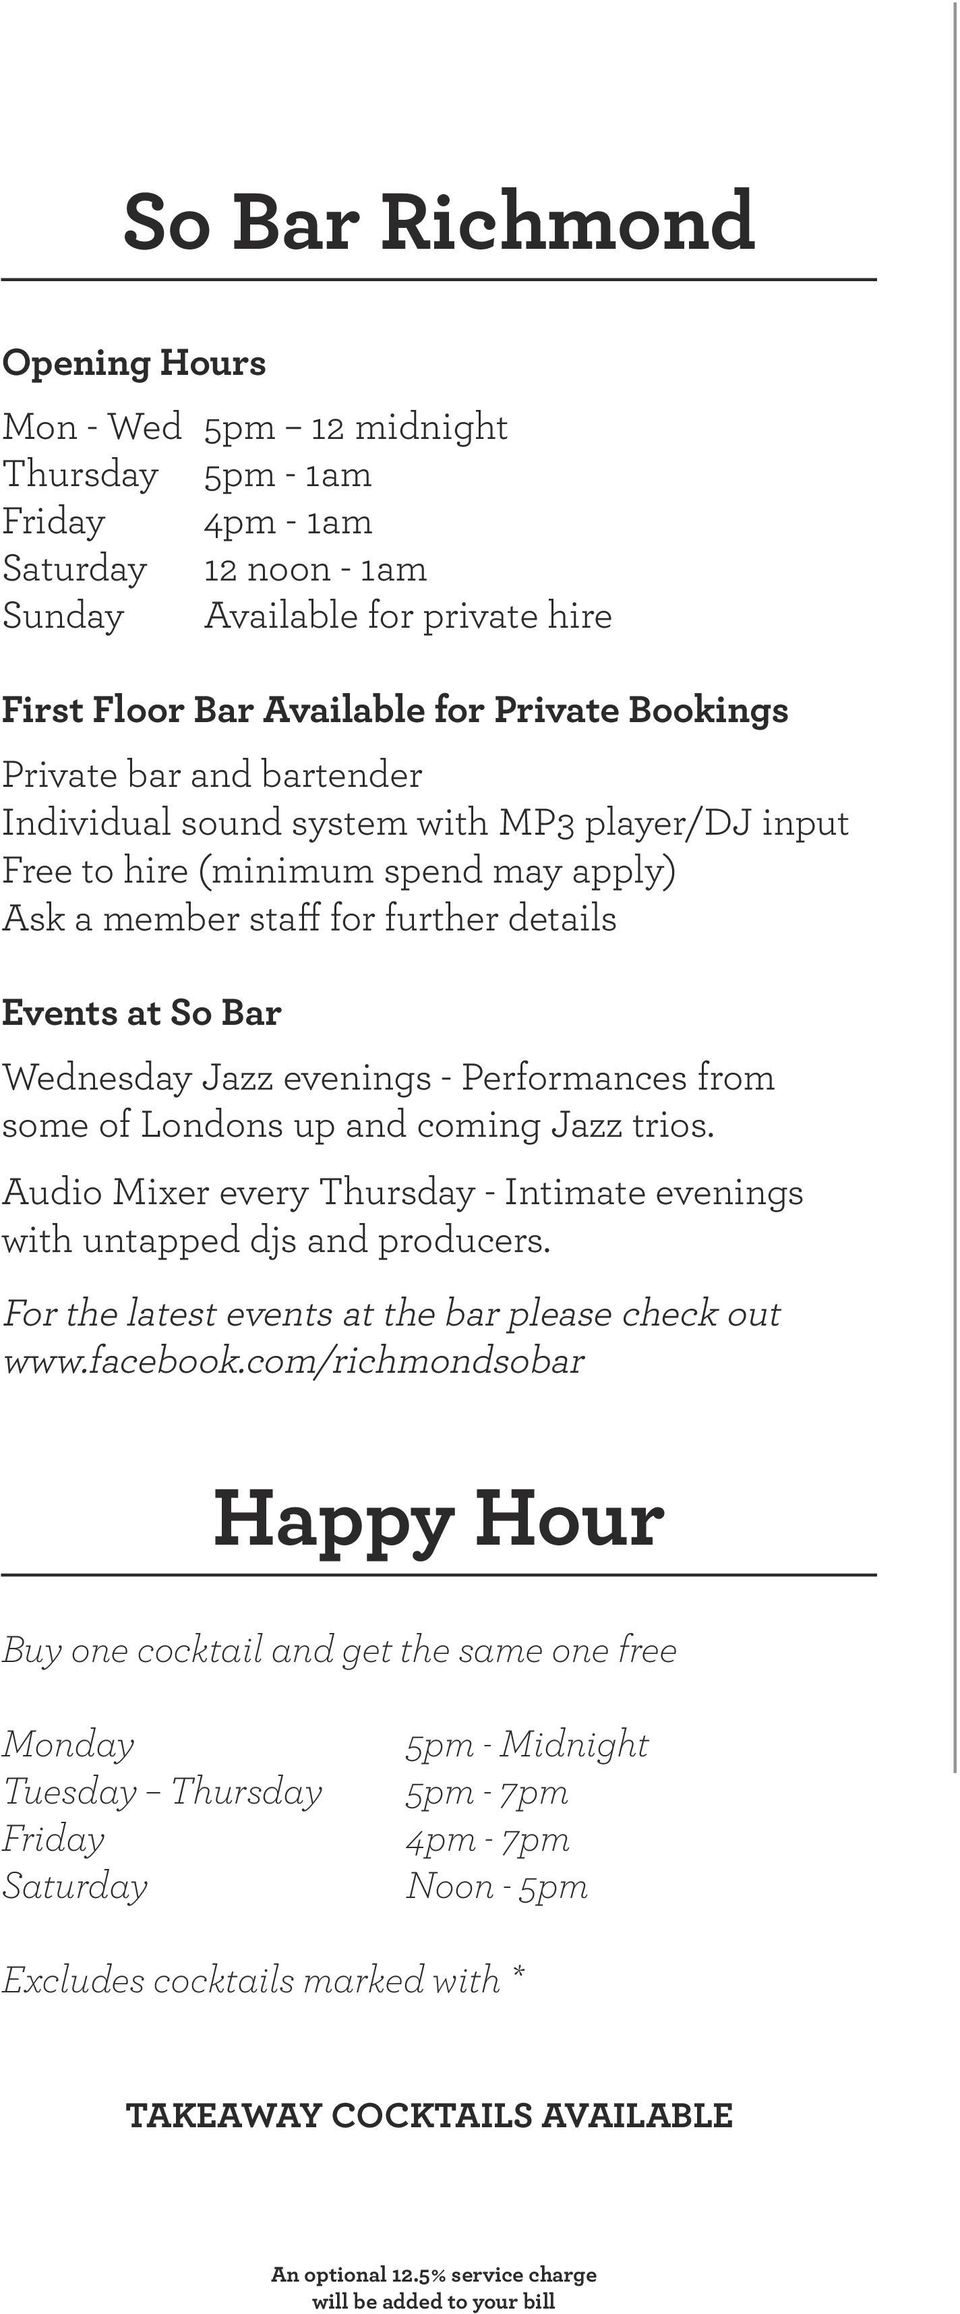 Performances from some of Londons up and coming Jazz trios. Audio Mixer every Thursday - Intimate evenings with untapped djs and producers. For the latest events at the bar please check out www.